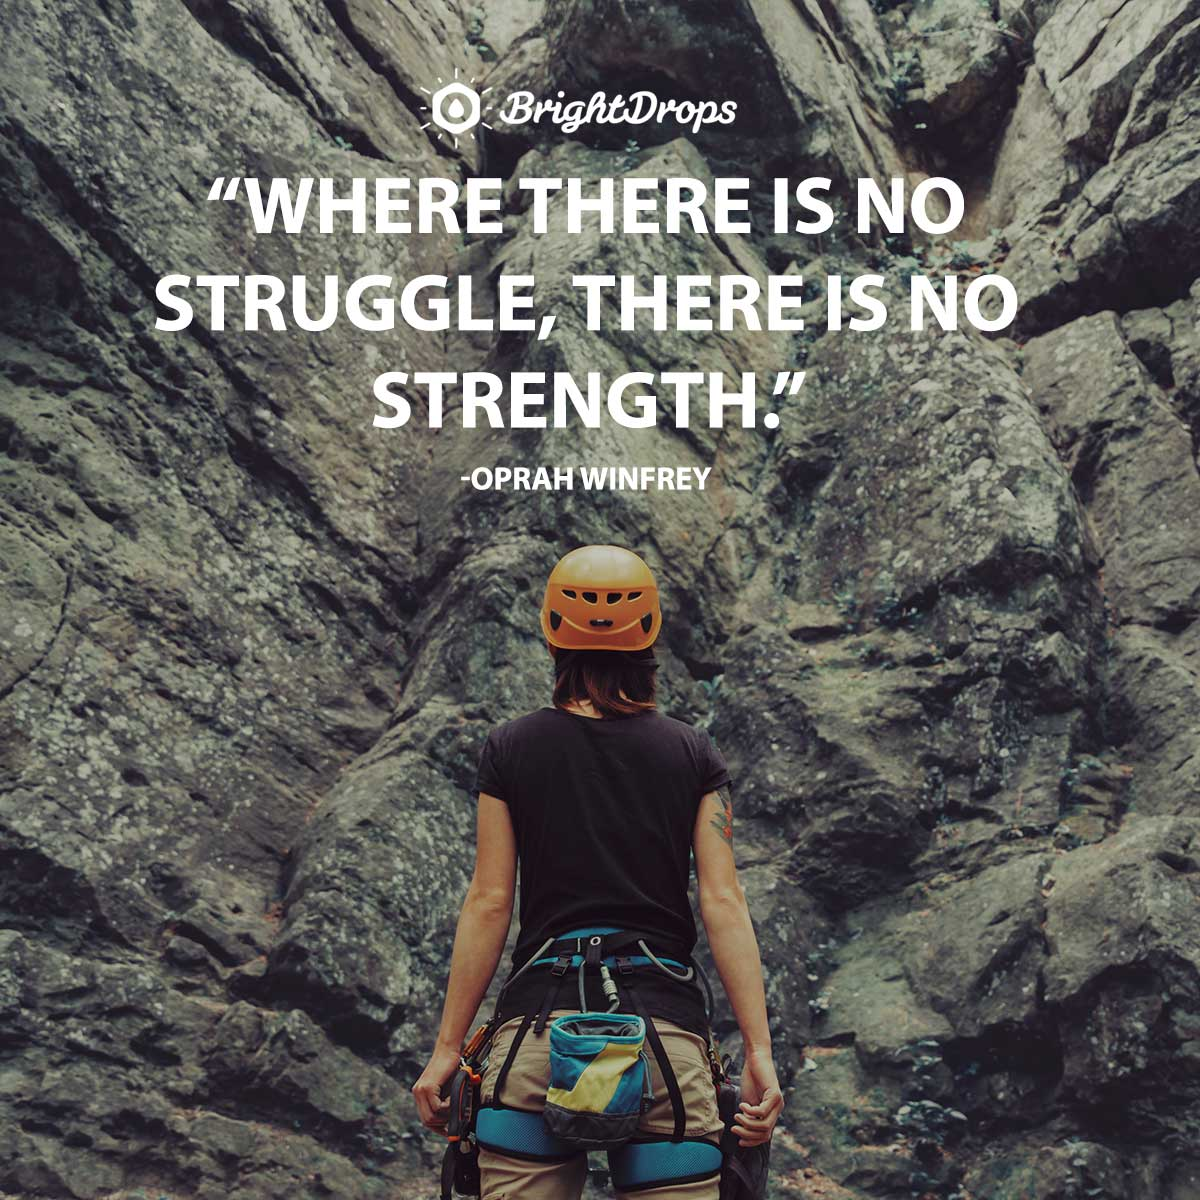 Where there is no struggle, there is no strength. -Oprah Winfrey